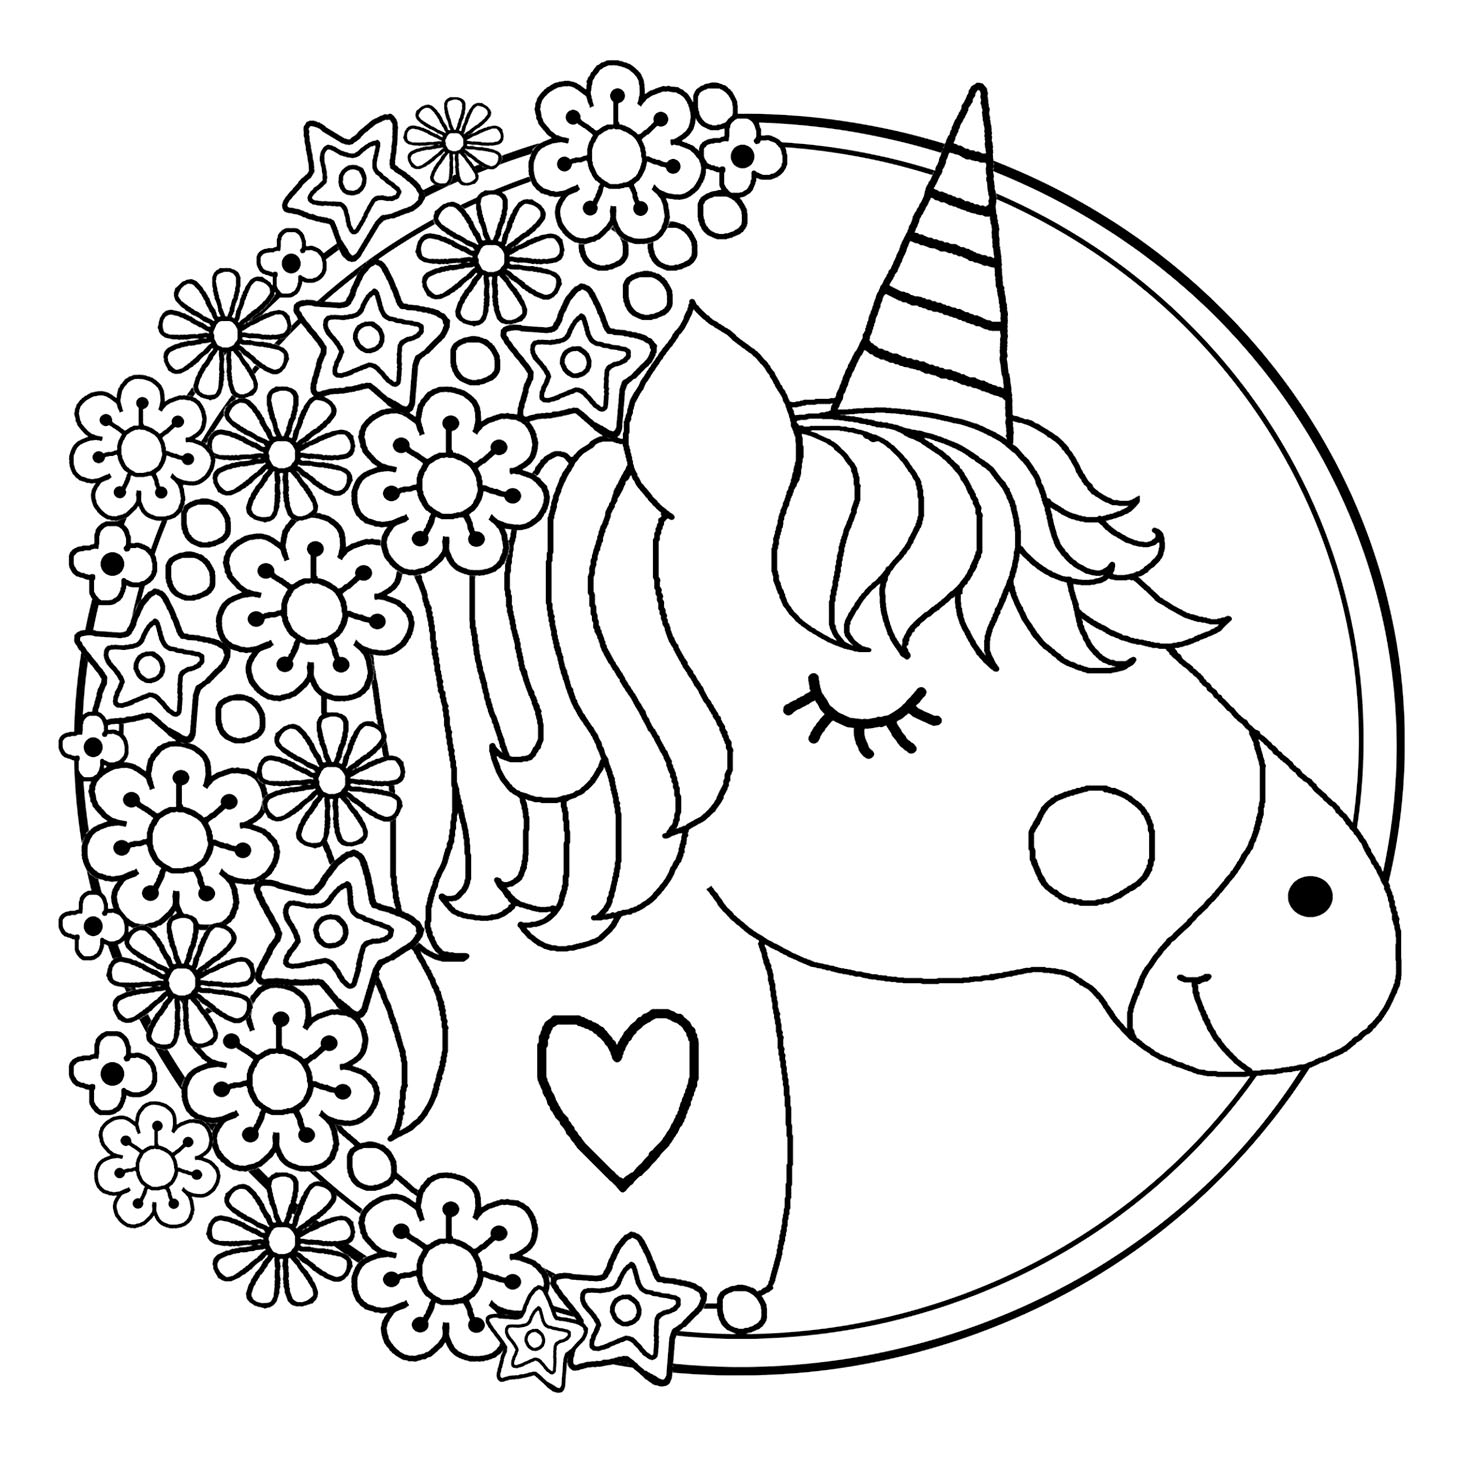 coloring unicorn kids drawing unicorn coloring pages to download and print for free unicorn coloring kids drawing